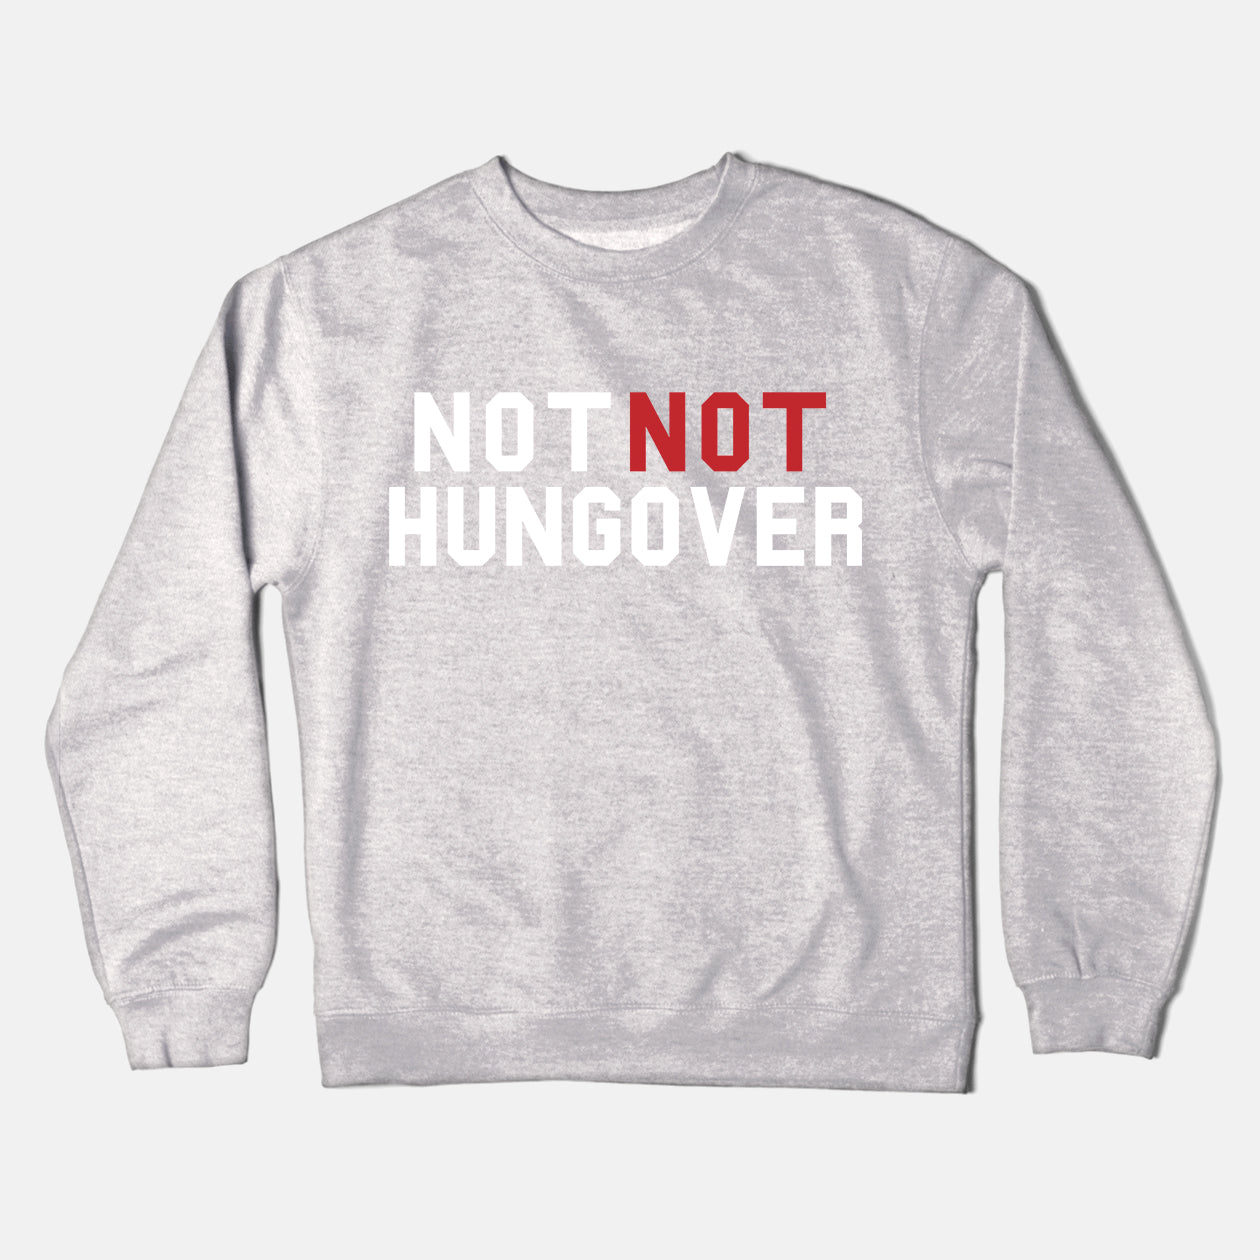 Not Not Hungover Sweatshirt